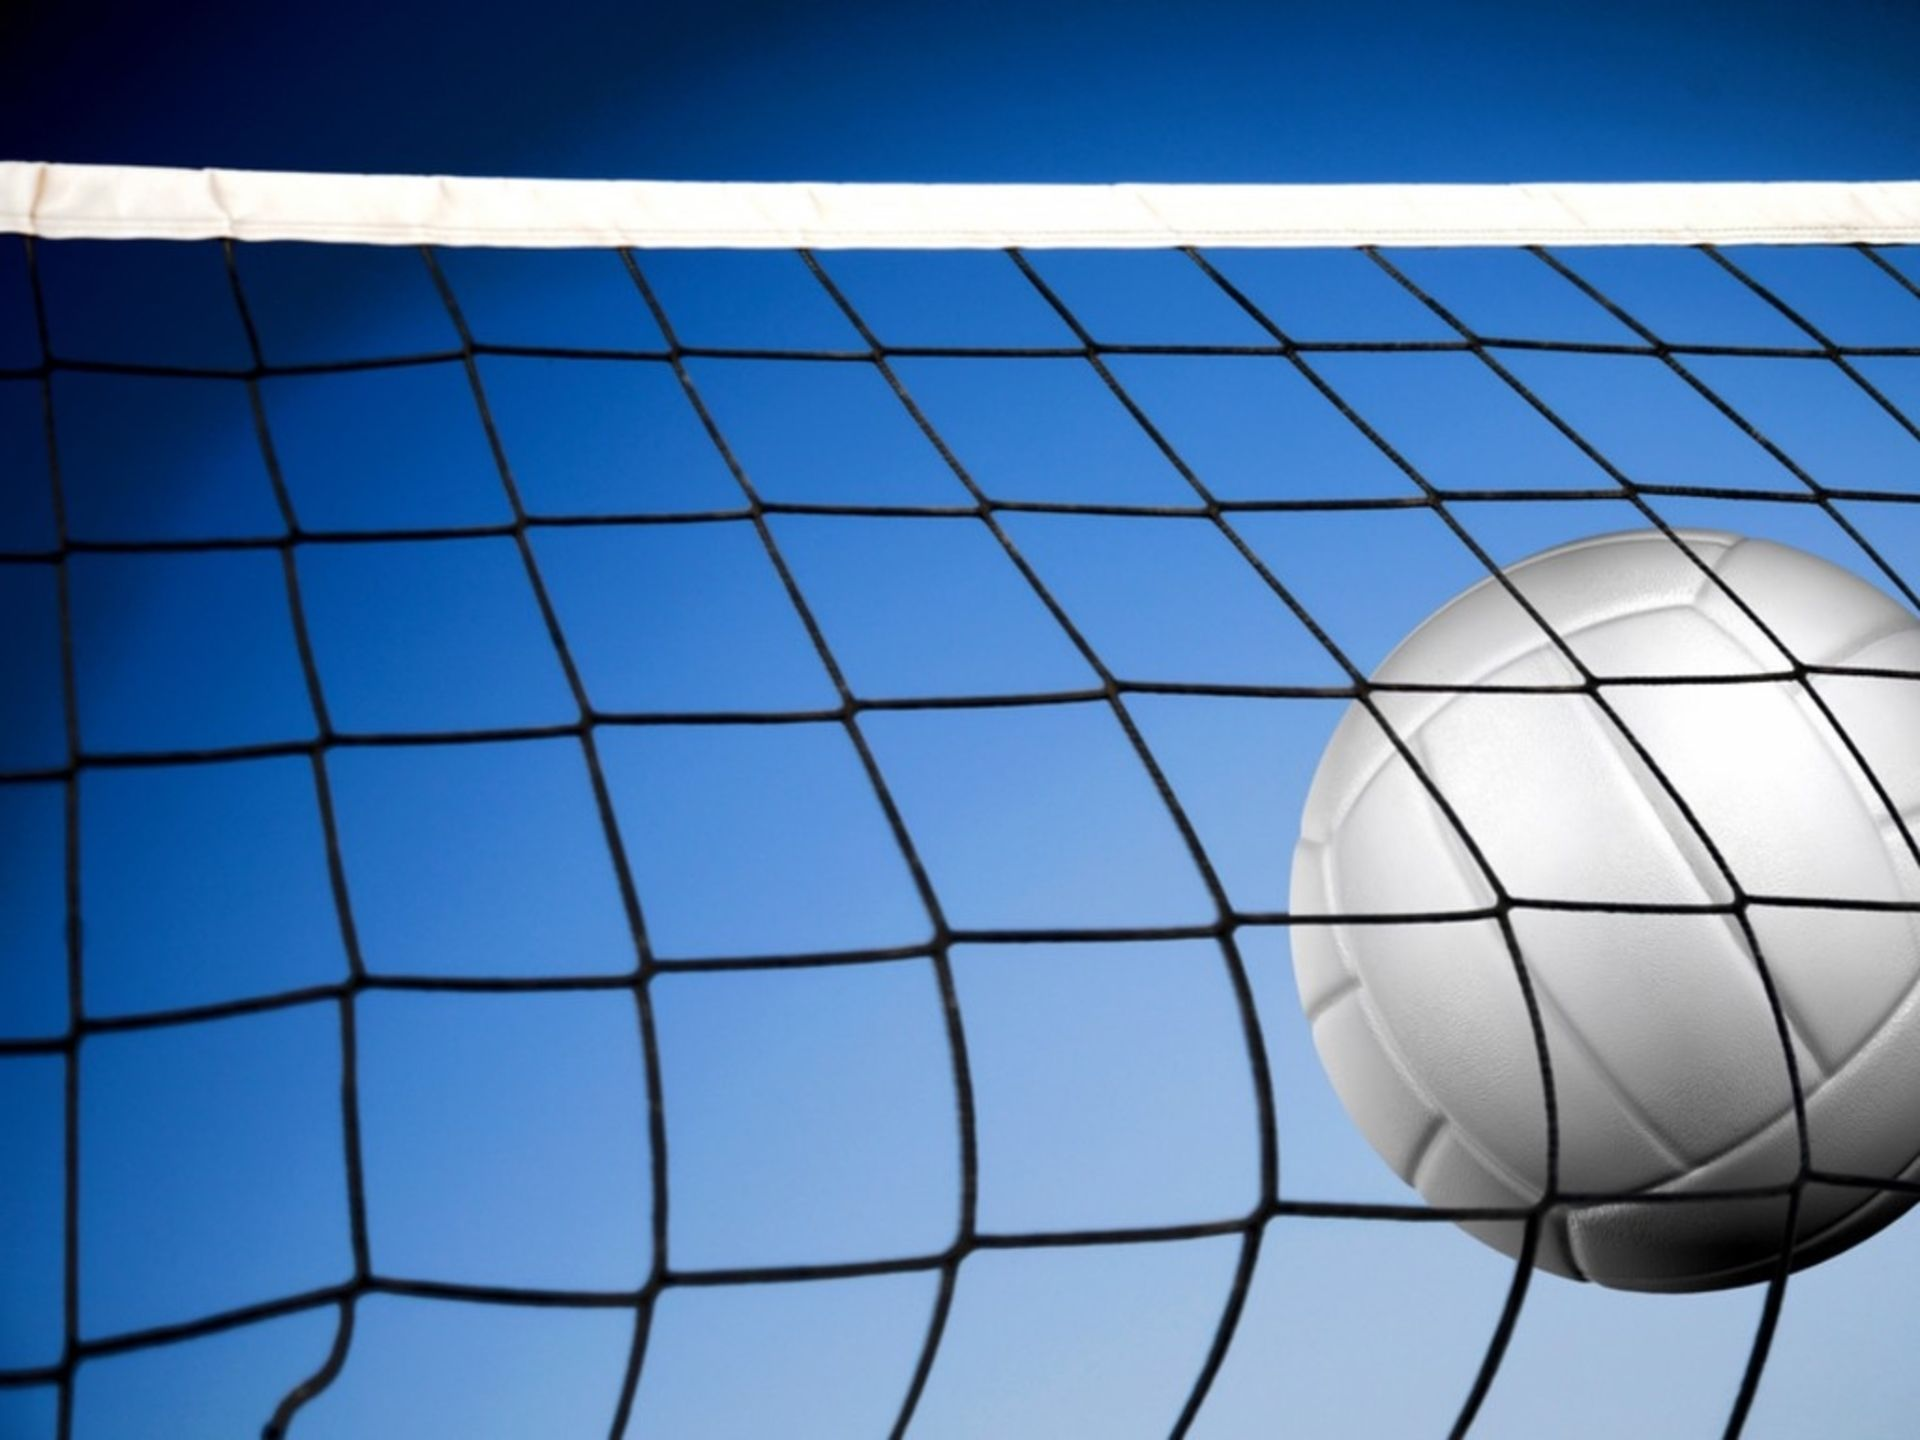 Volleyball Wallpaper Google Search Indoor Volleyball Volleyball Wallpaper Volleyball